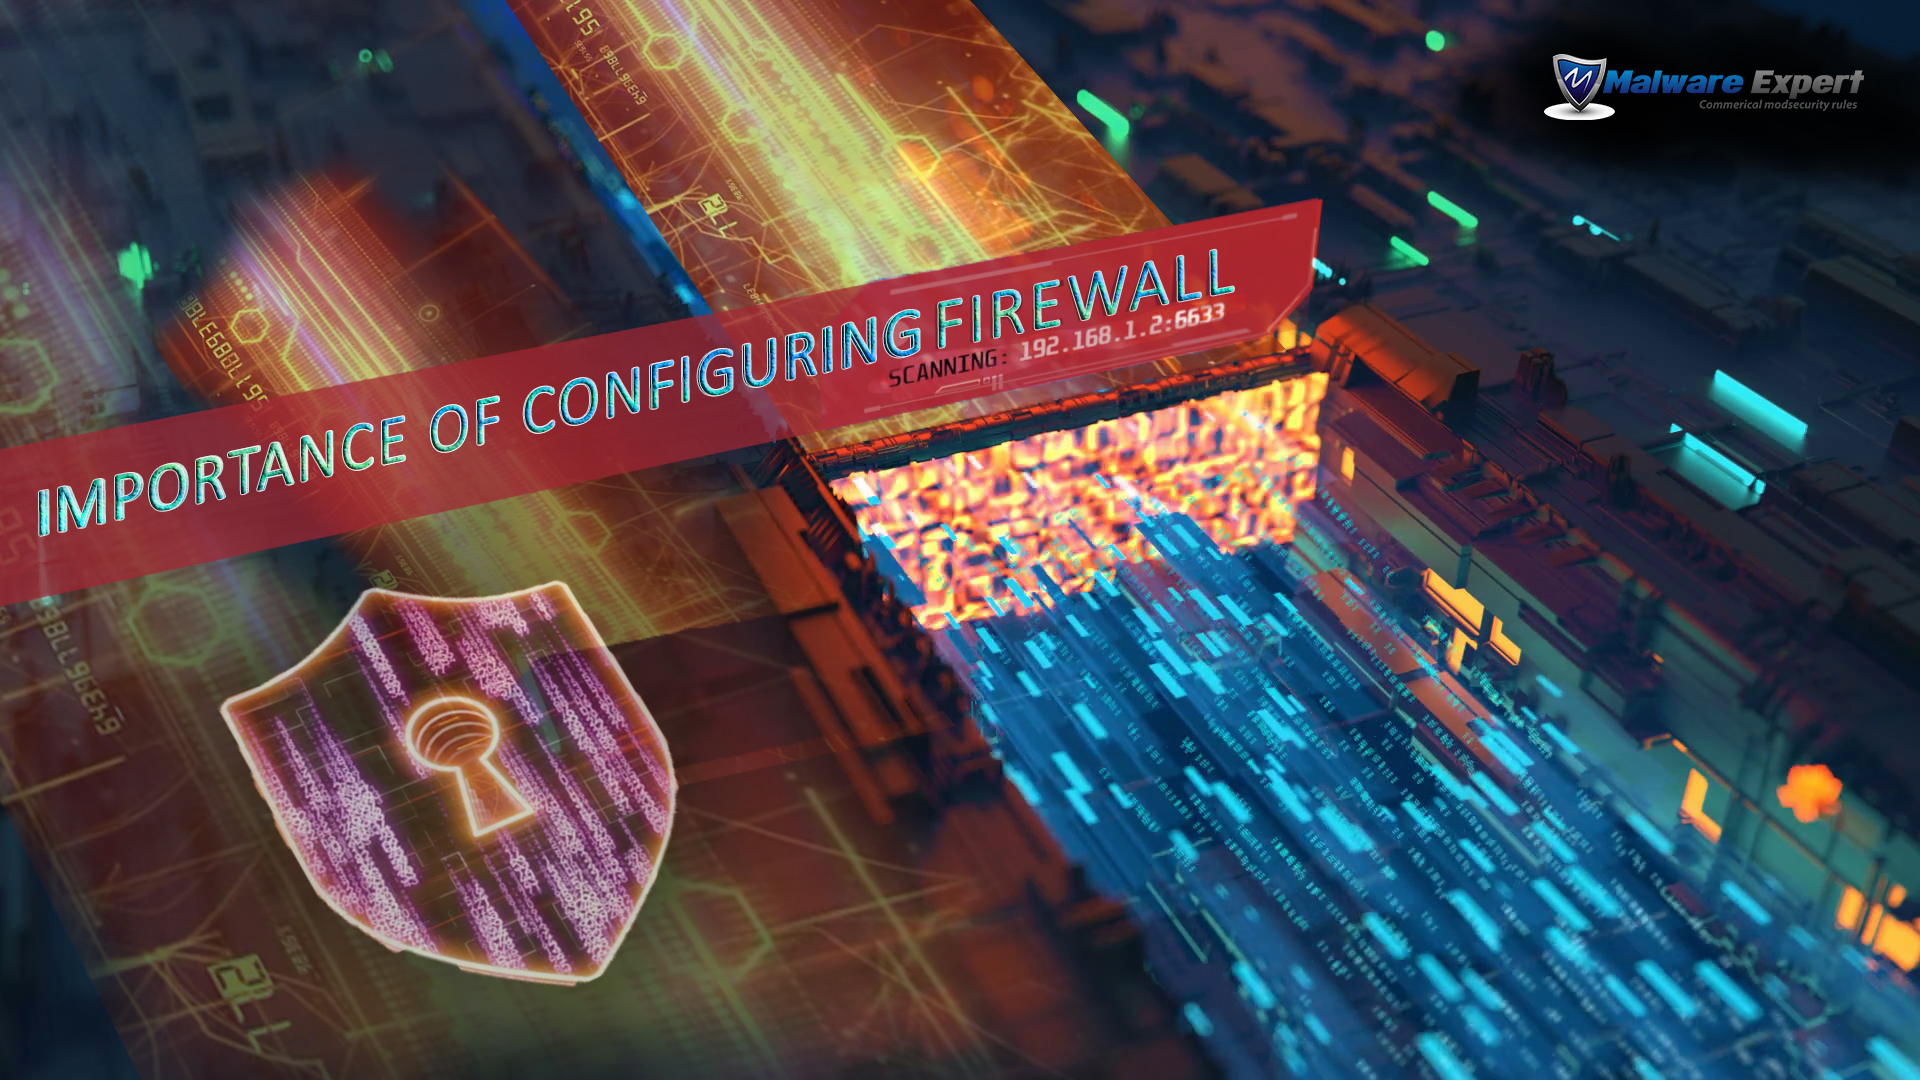 Importance of configuring firewall